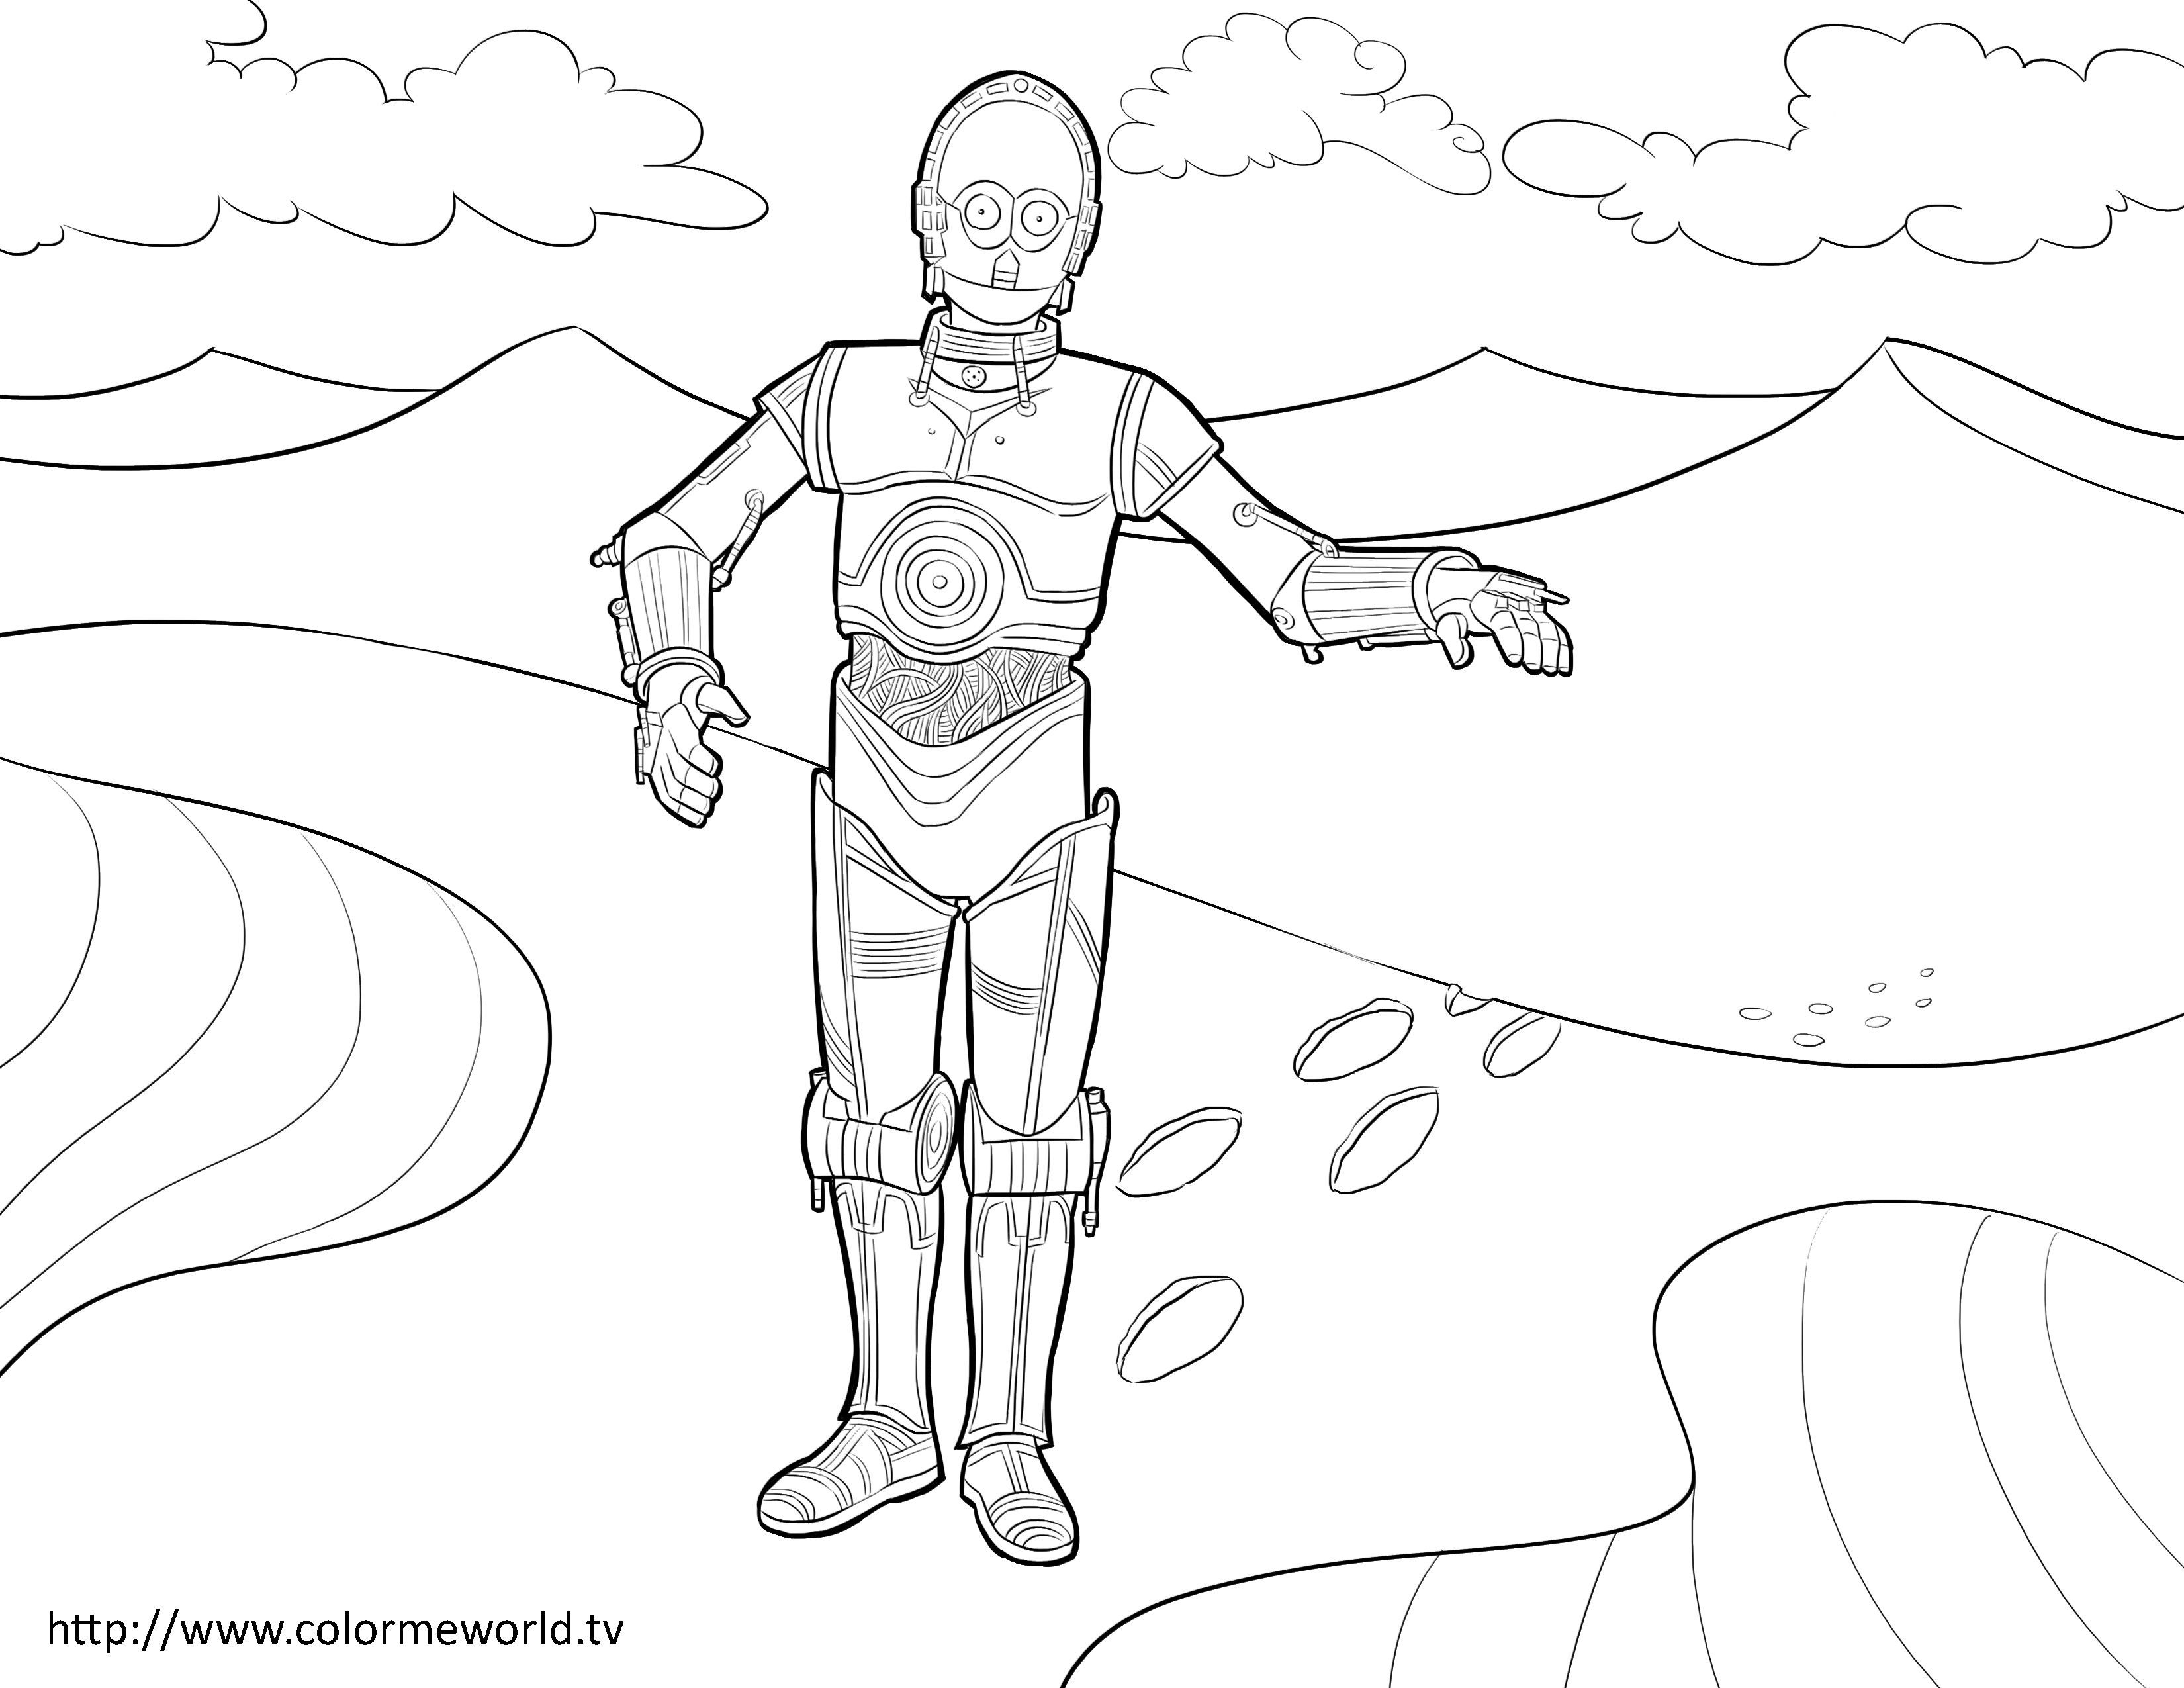 C 3po Pdf Printable Coloring Page Lineart Star Wars Pinterest